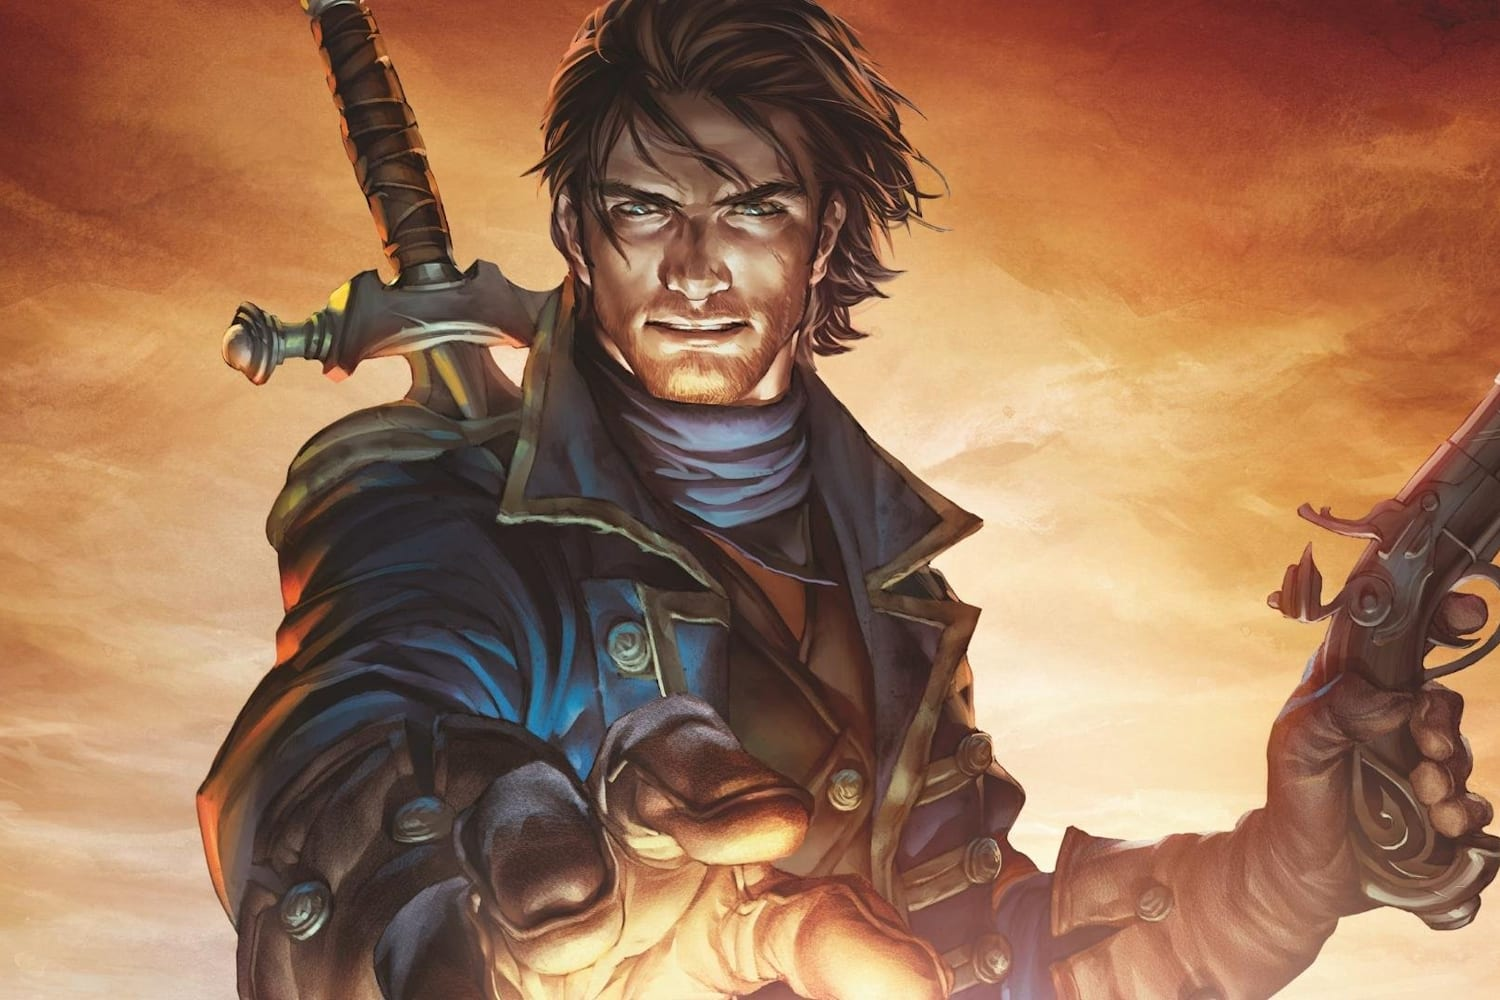 Fable IV: 7 things we want to see ++Wish List++